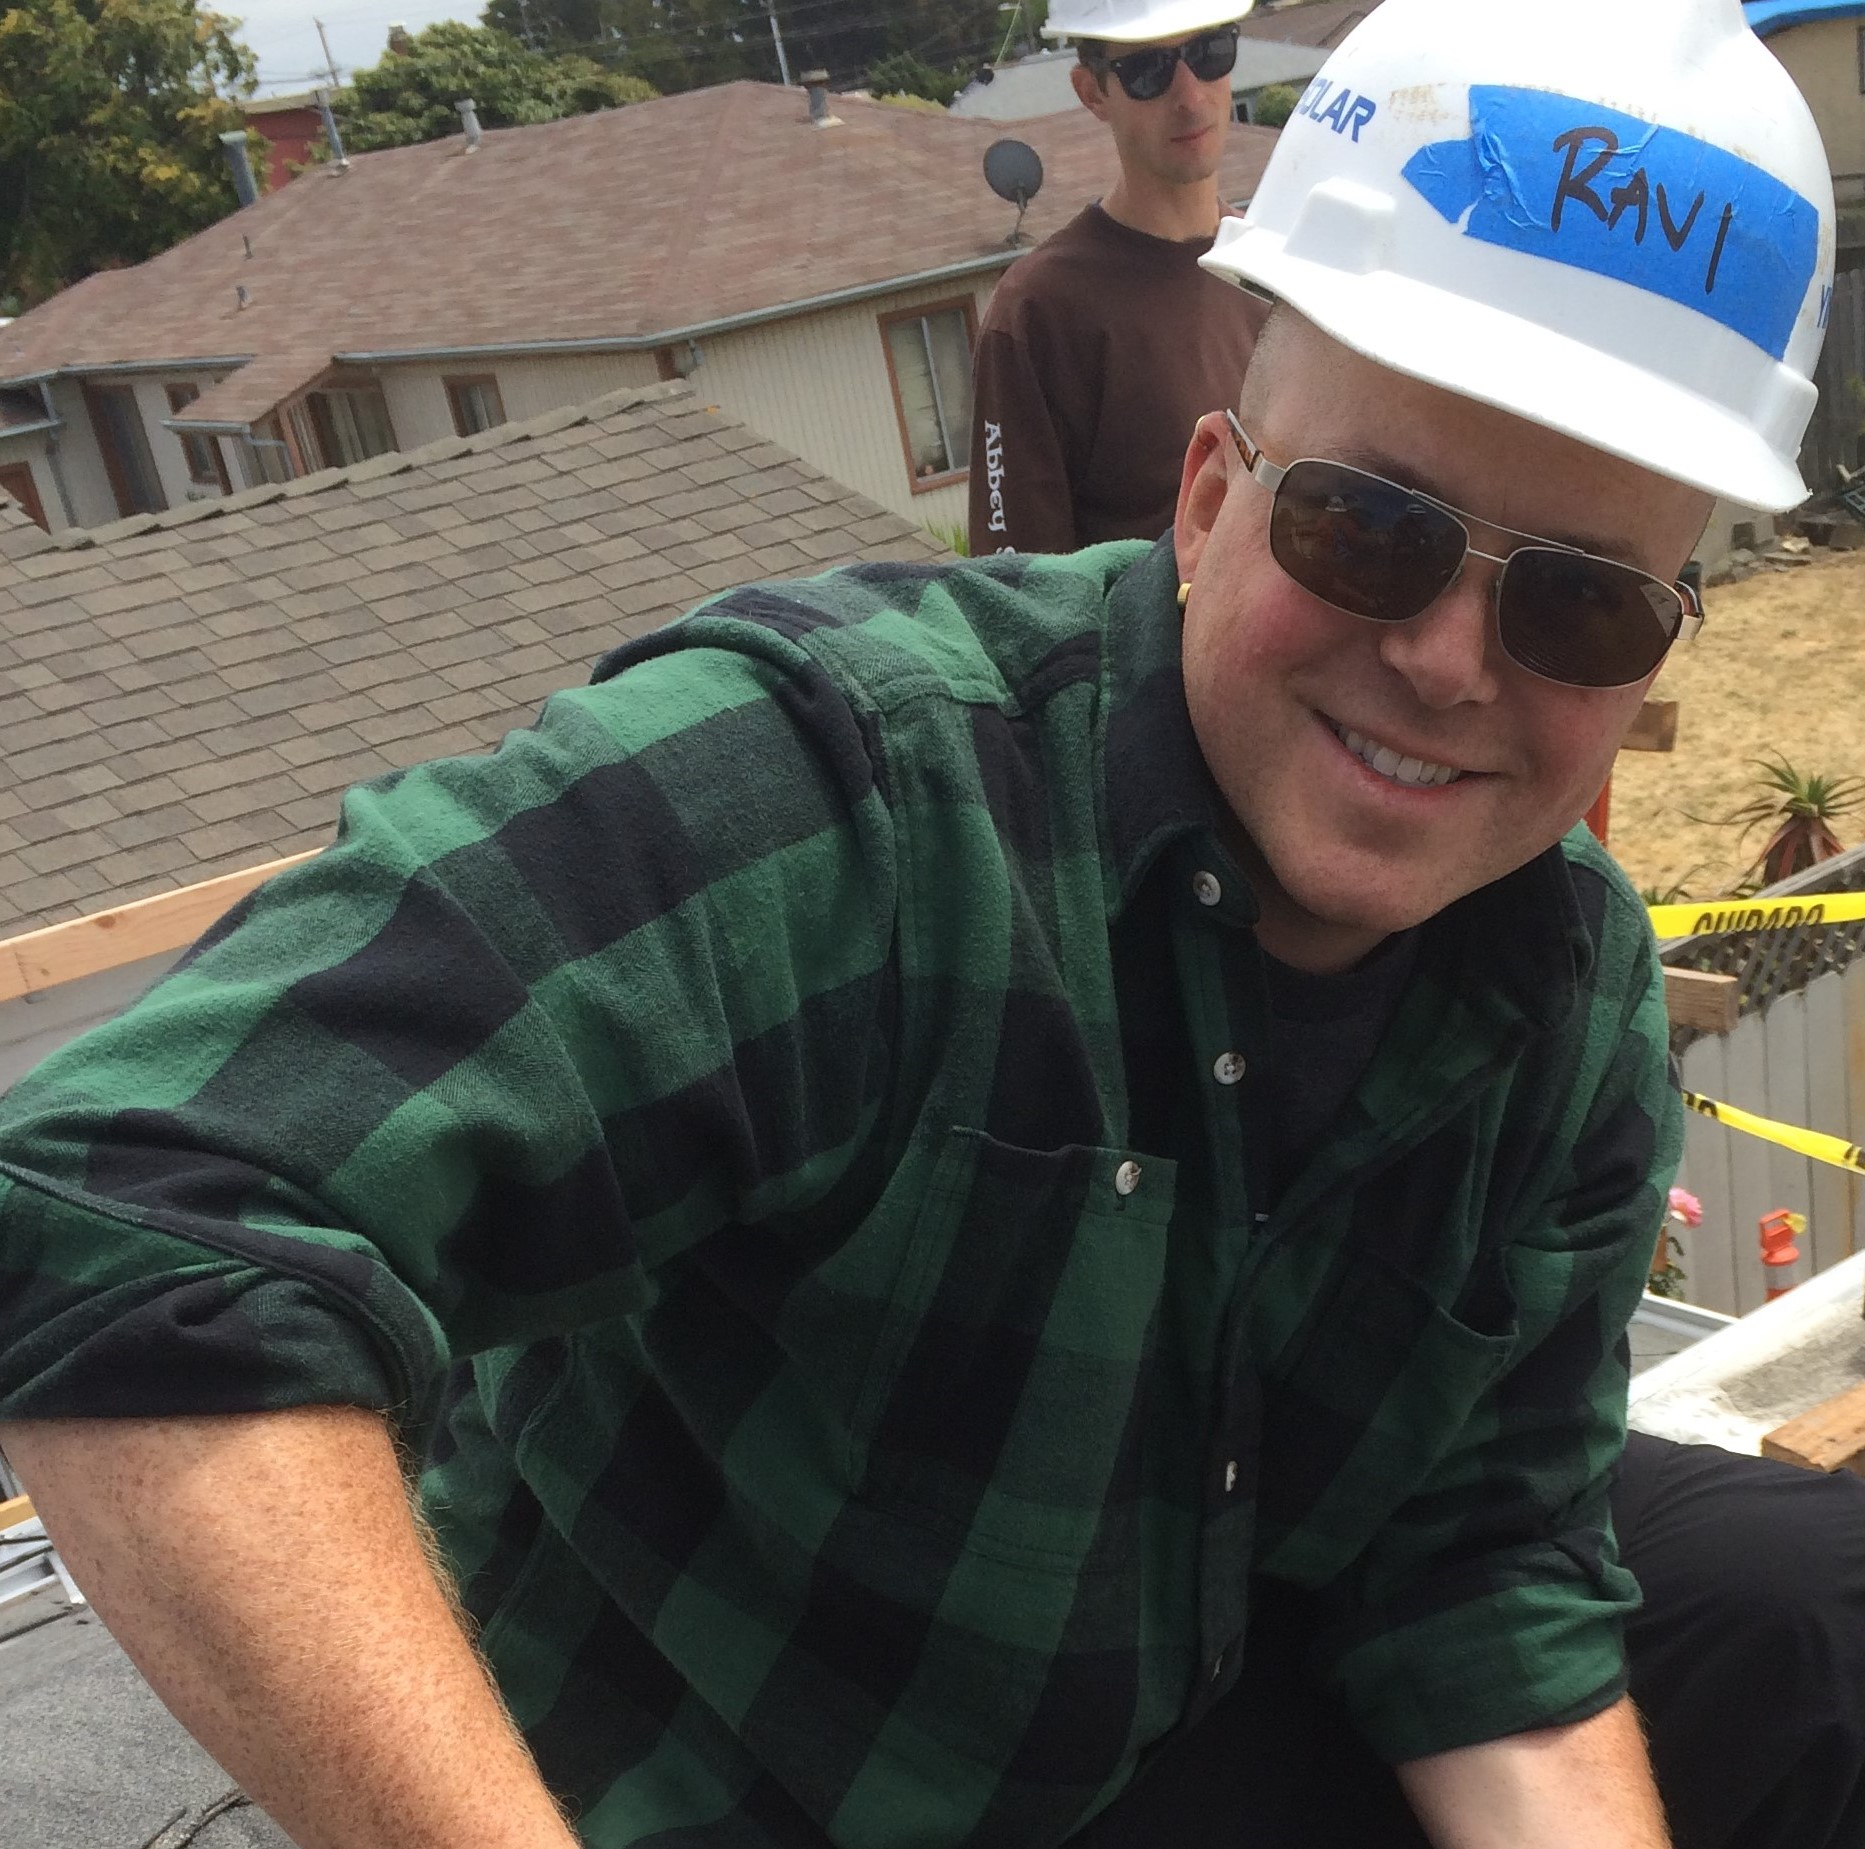 Ravi, in a hard hat, on a roof, smiles at the camera as he holds a drill